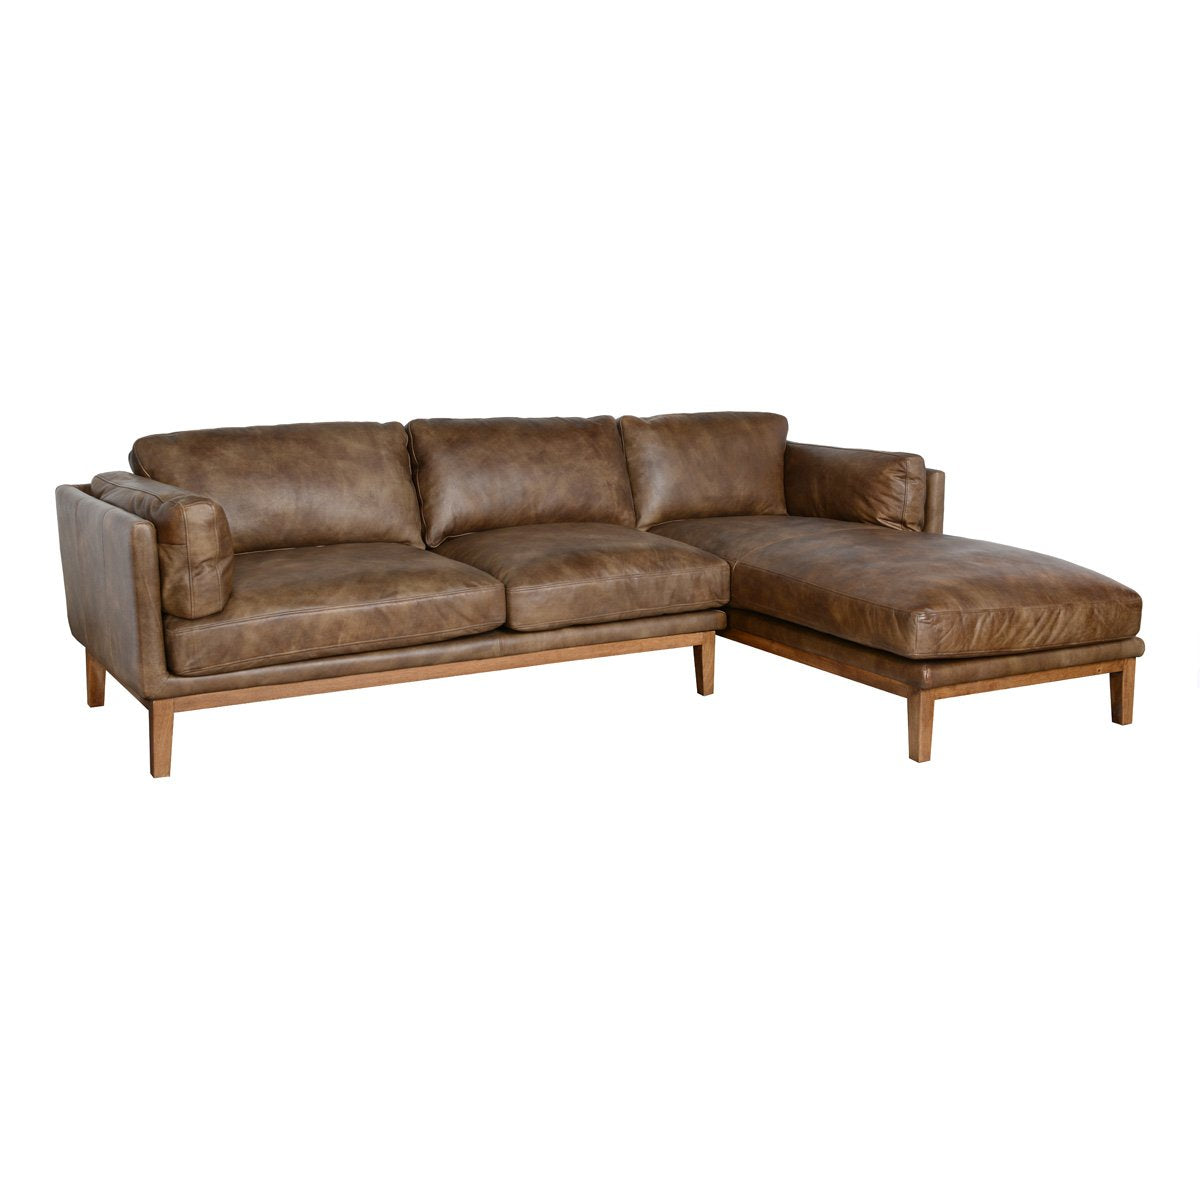 Ruston Sectional Sofa